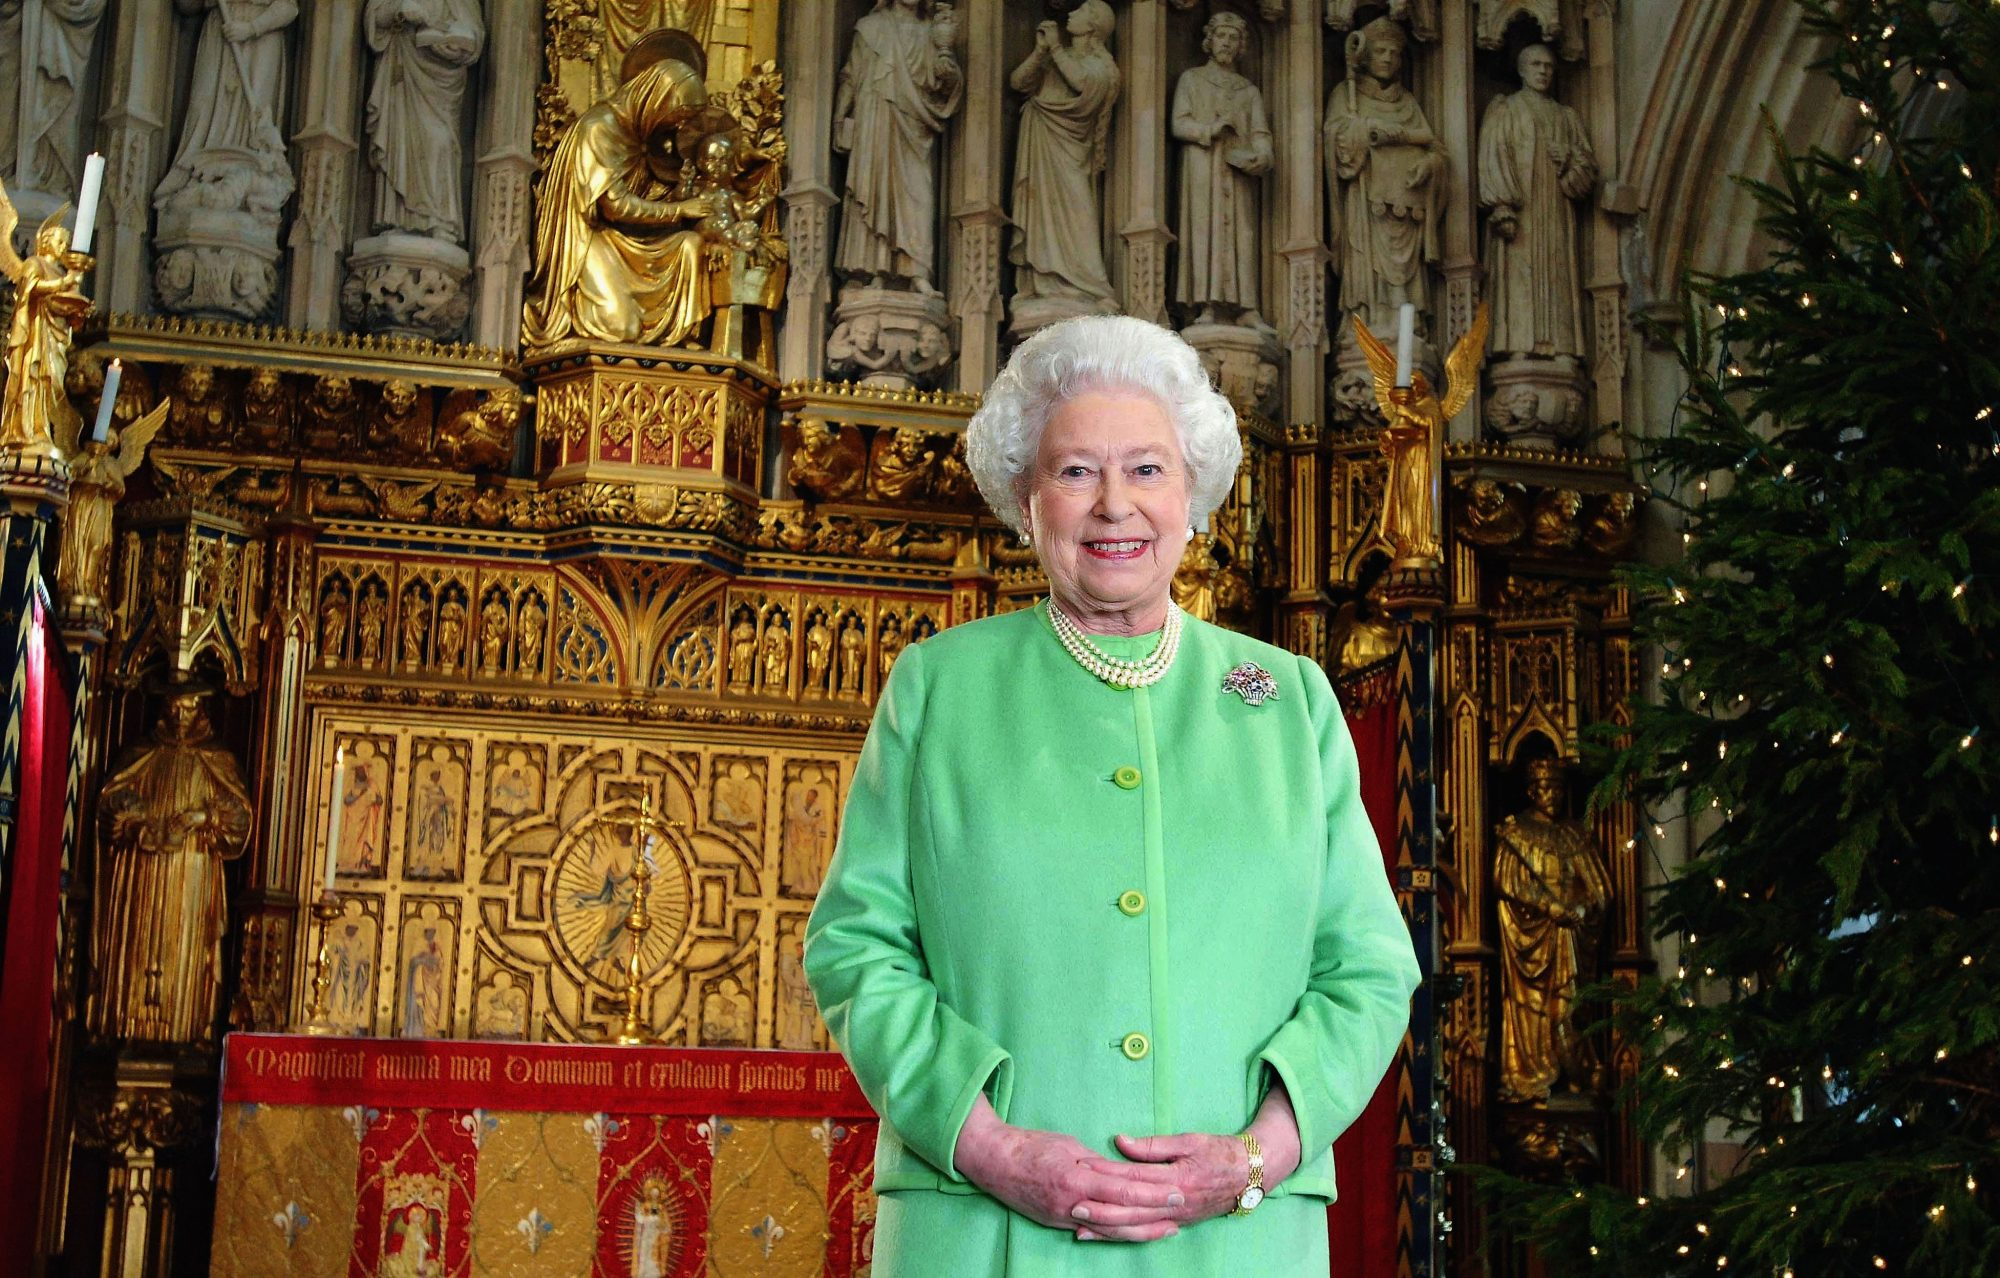 The Queen's 2006 Christmas Broadcast